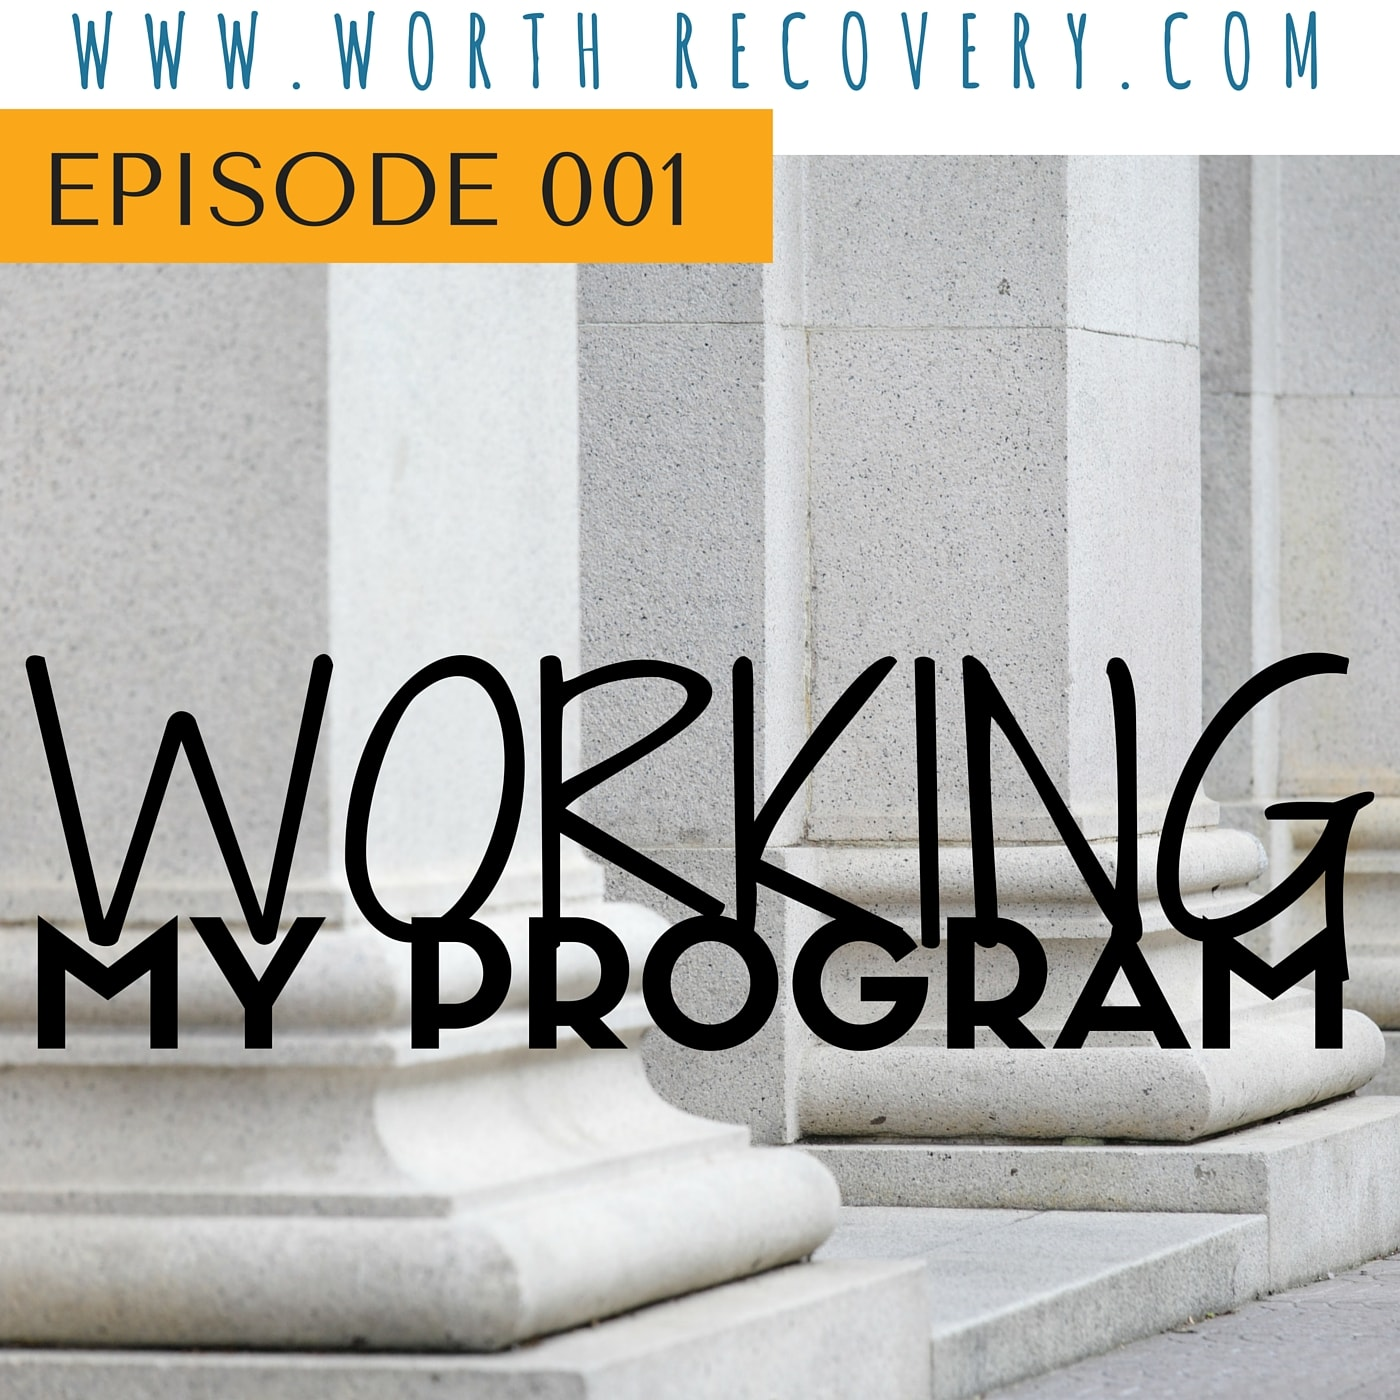 Episode 001: Working MY Program!